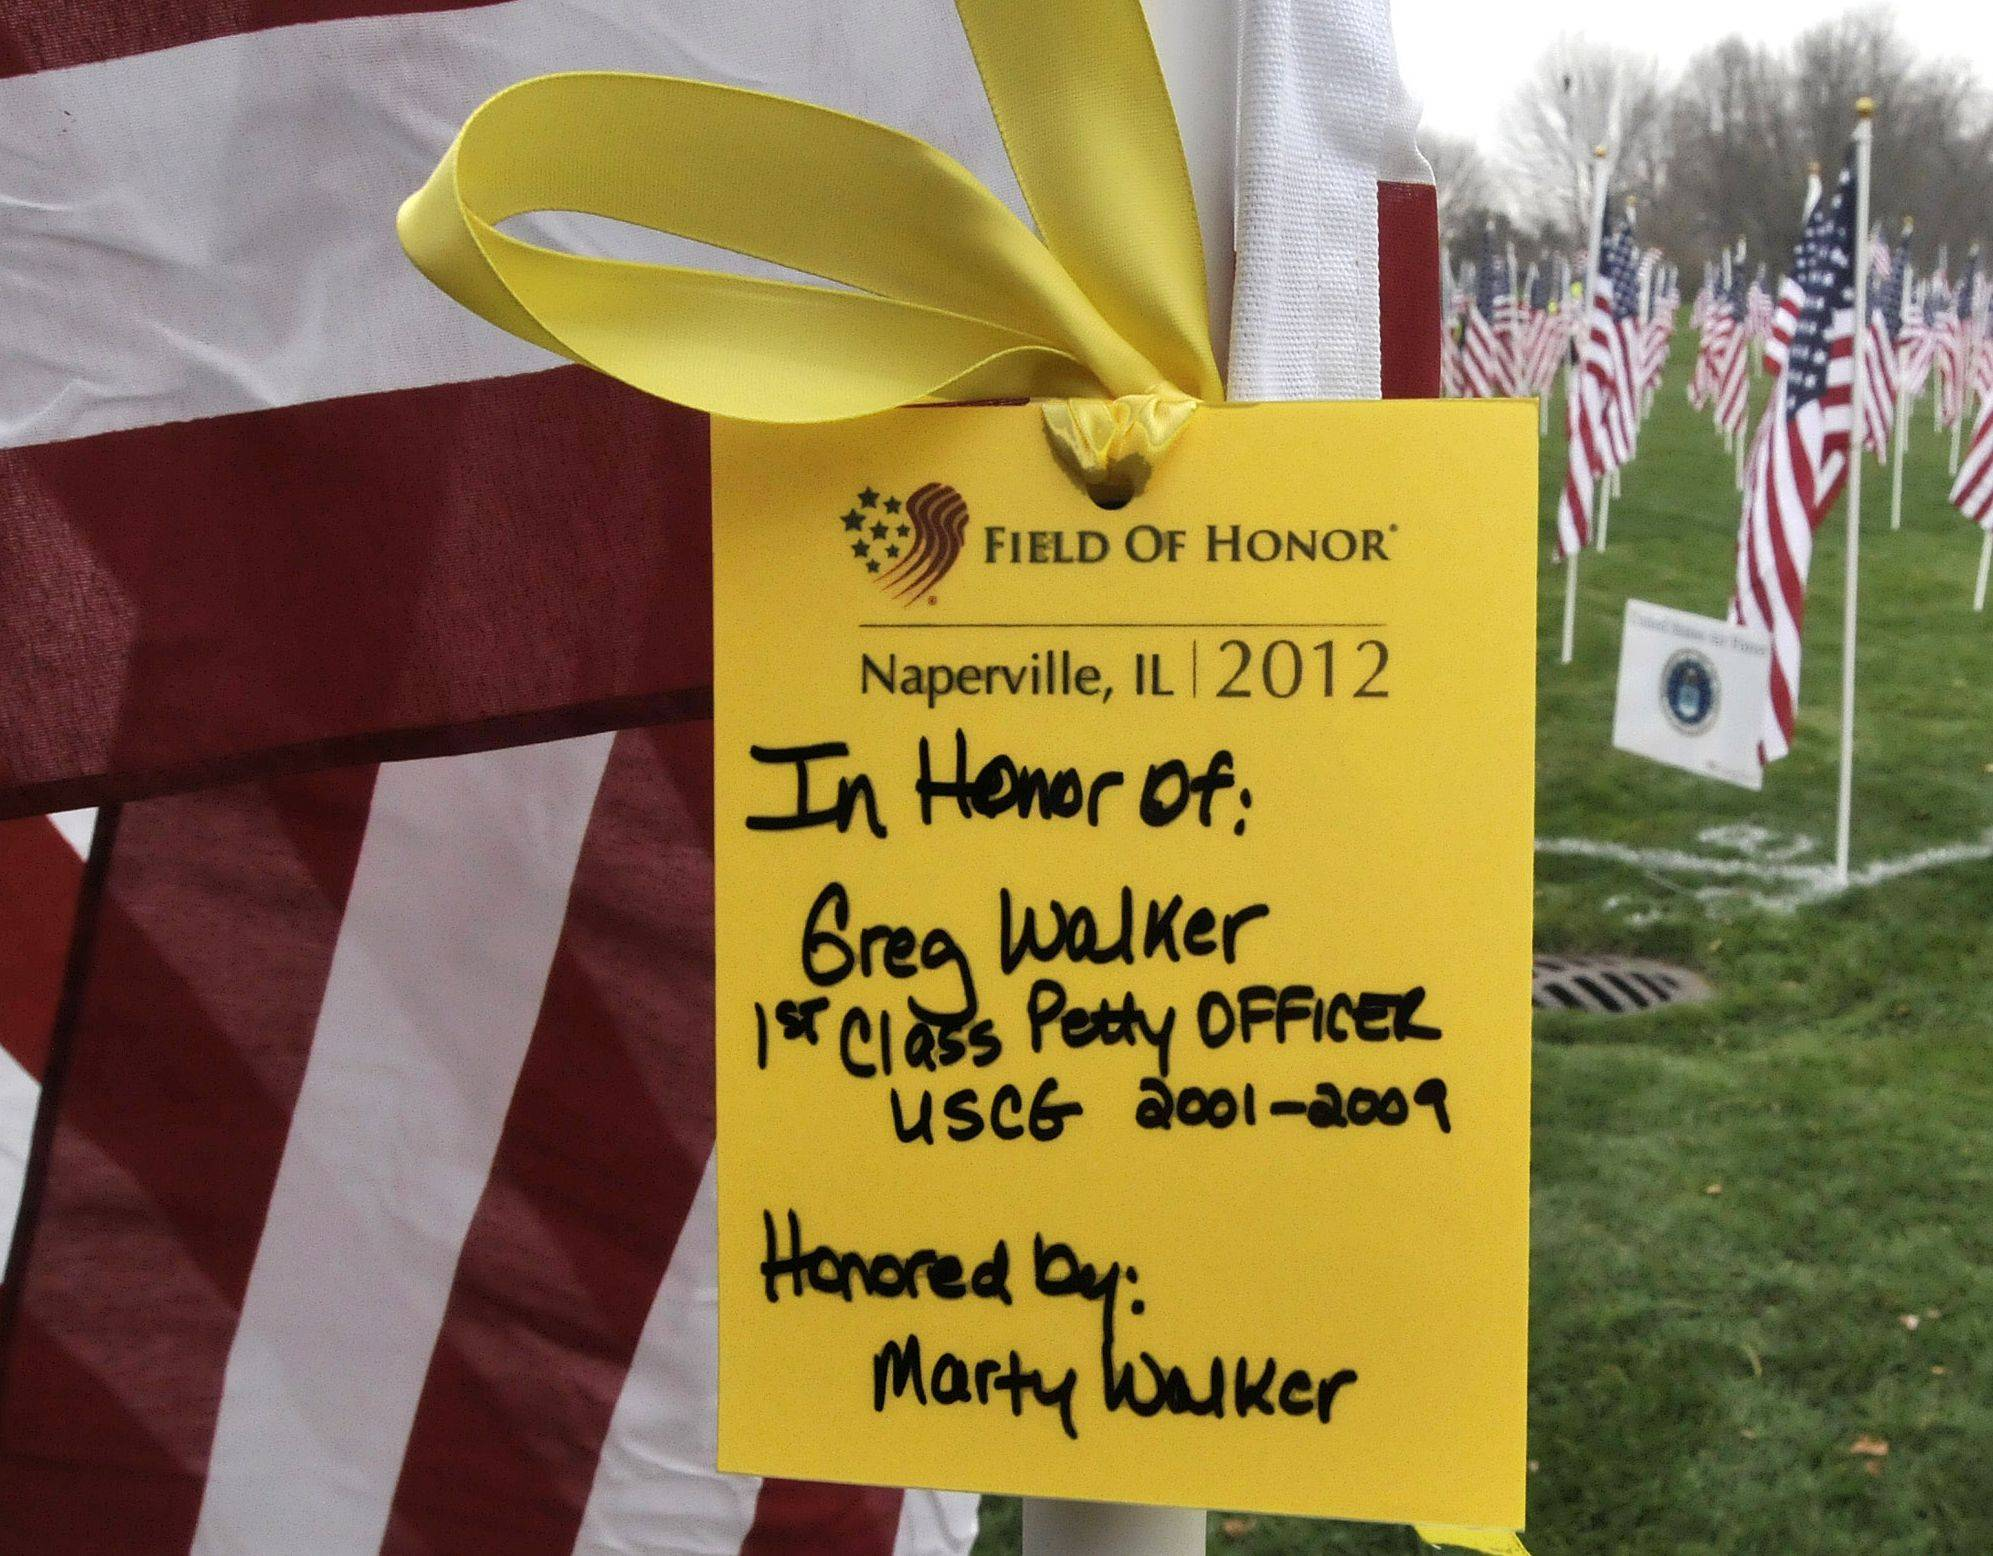 Attendees at this weekend's Naperville Healing Field of Honor America can honor specific service members by attaching yellow tags to a flag at the display.